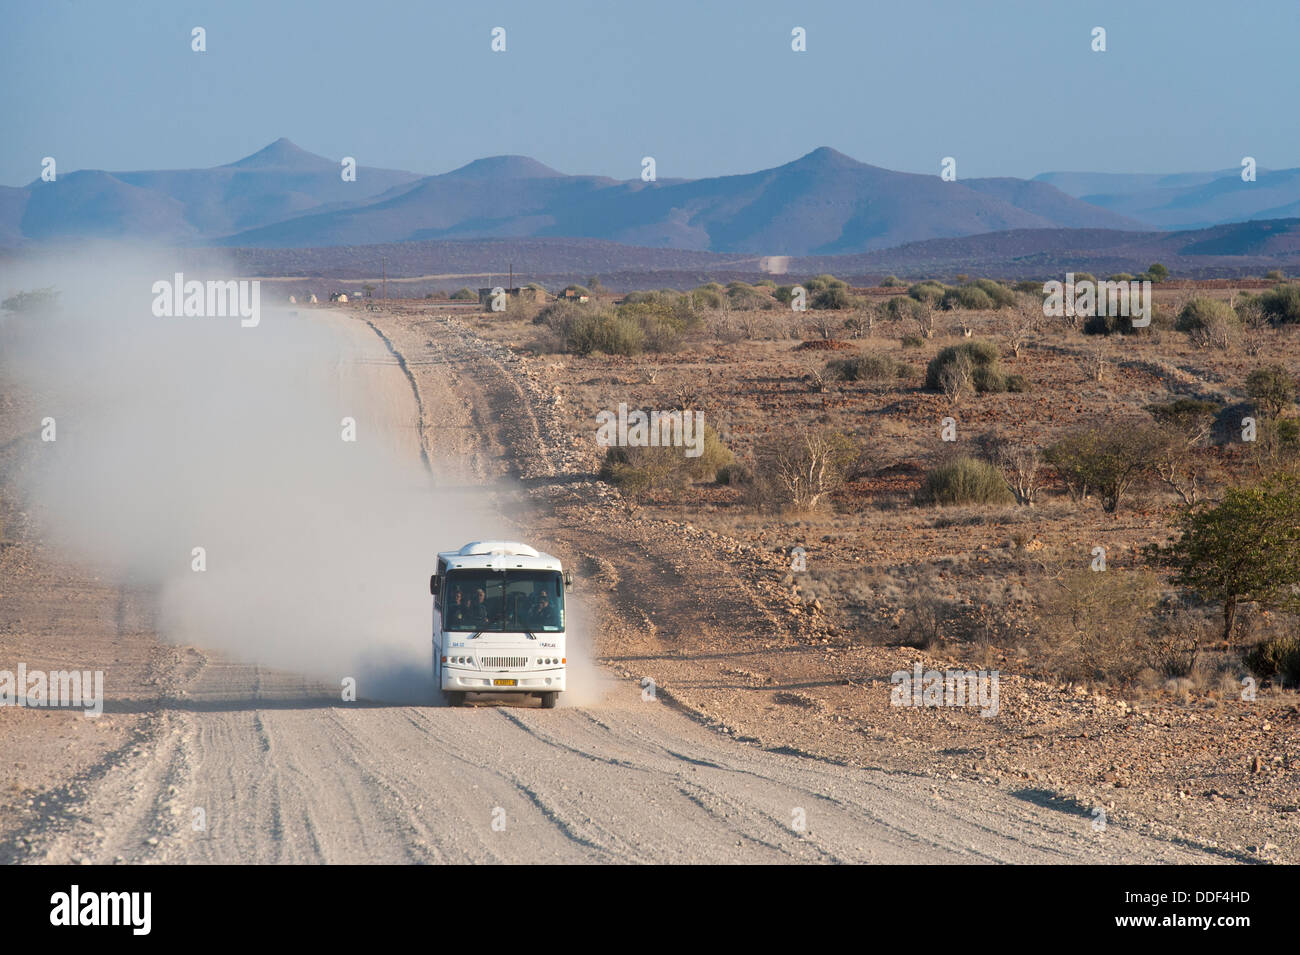 Tourist bus driving in a cloud of dust on a wide, dusty gravel road, Kunene Region, Namibia - Stock Image